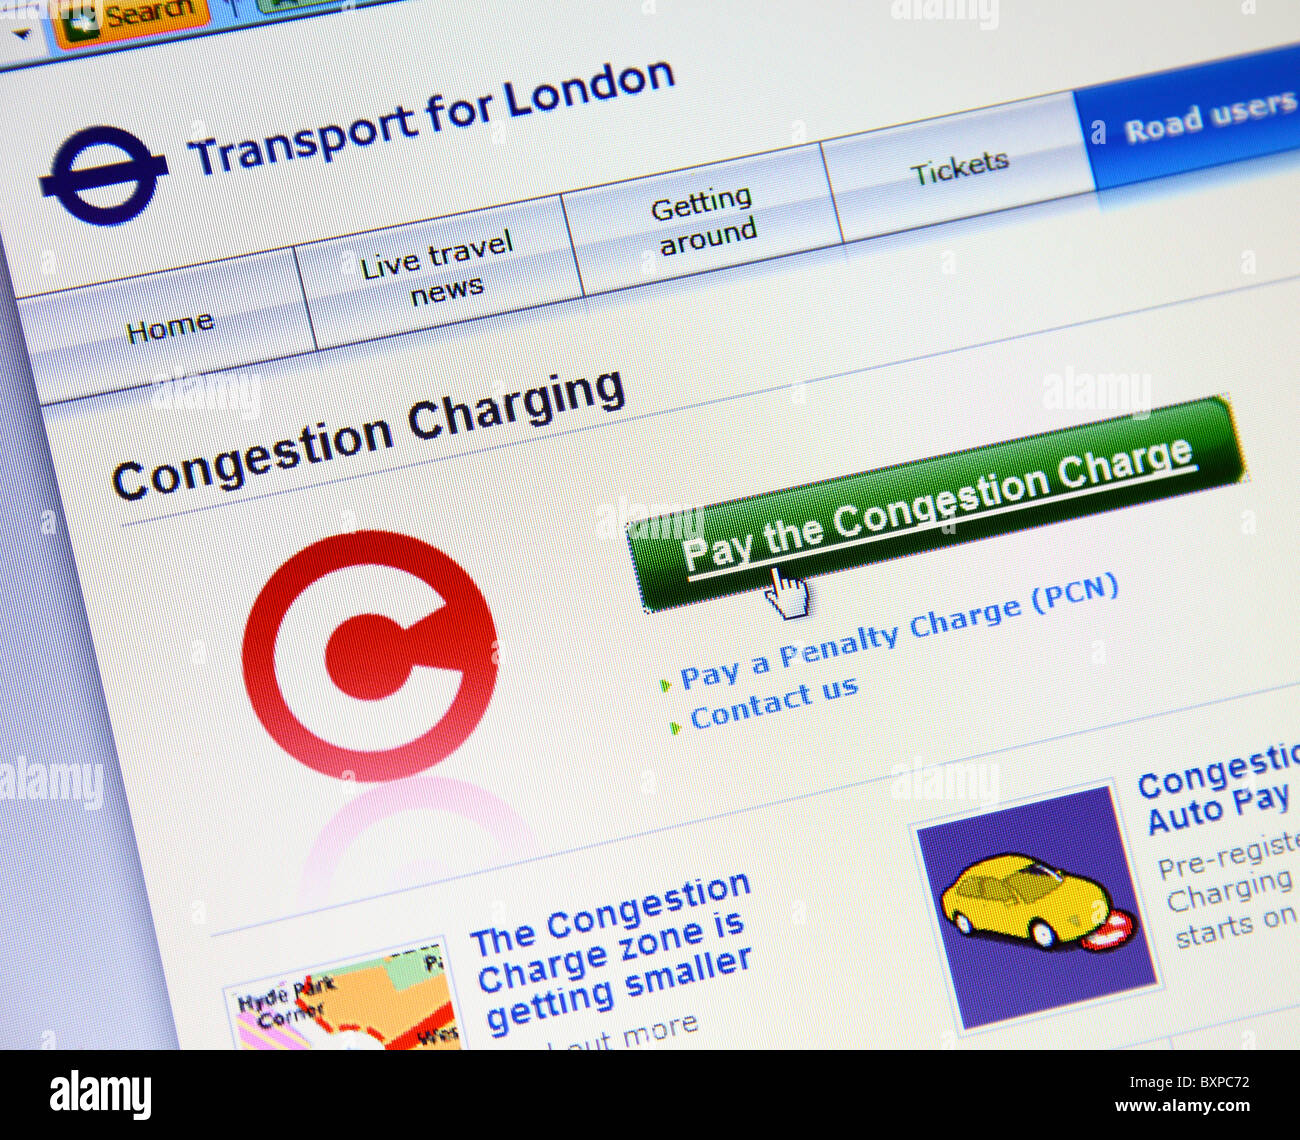 congestion charge london stockfotos congestion charge. Black Bedroom Furniture Sets. Home Design Ideas